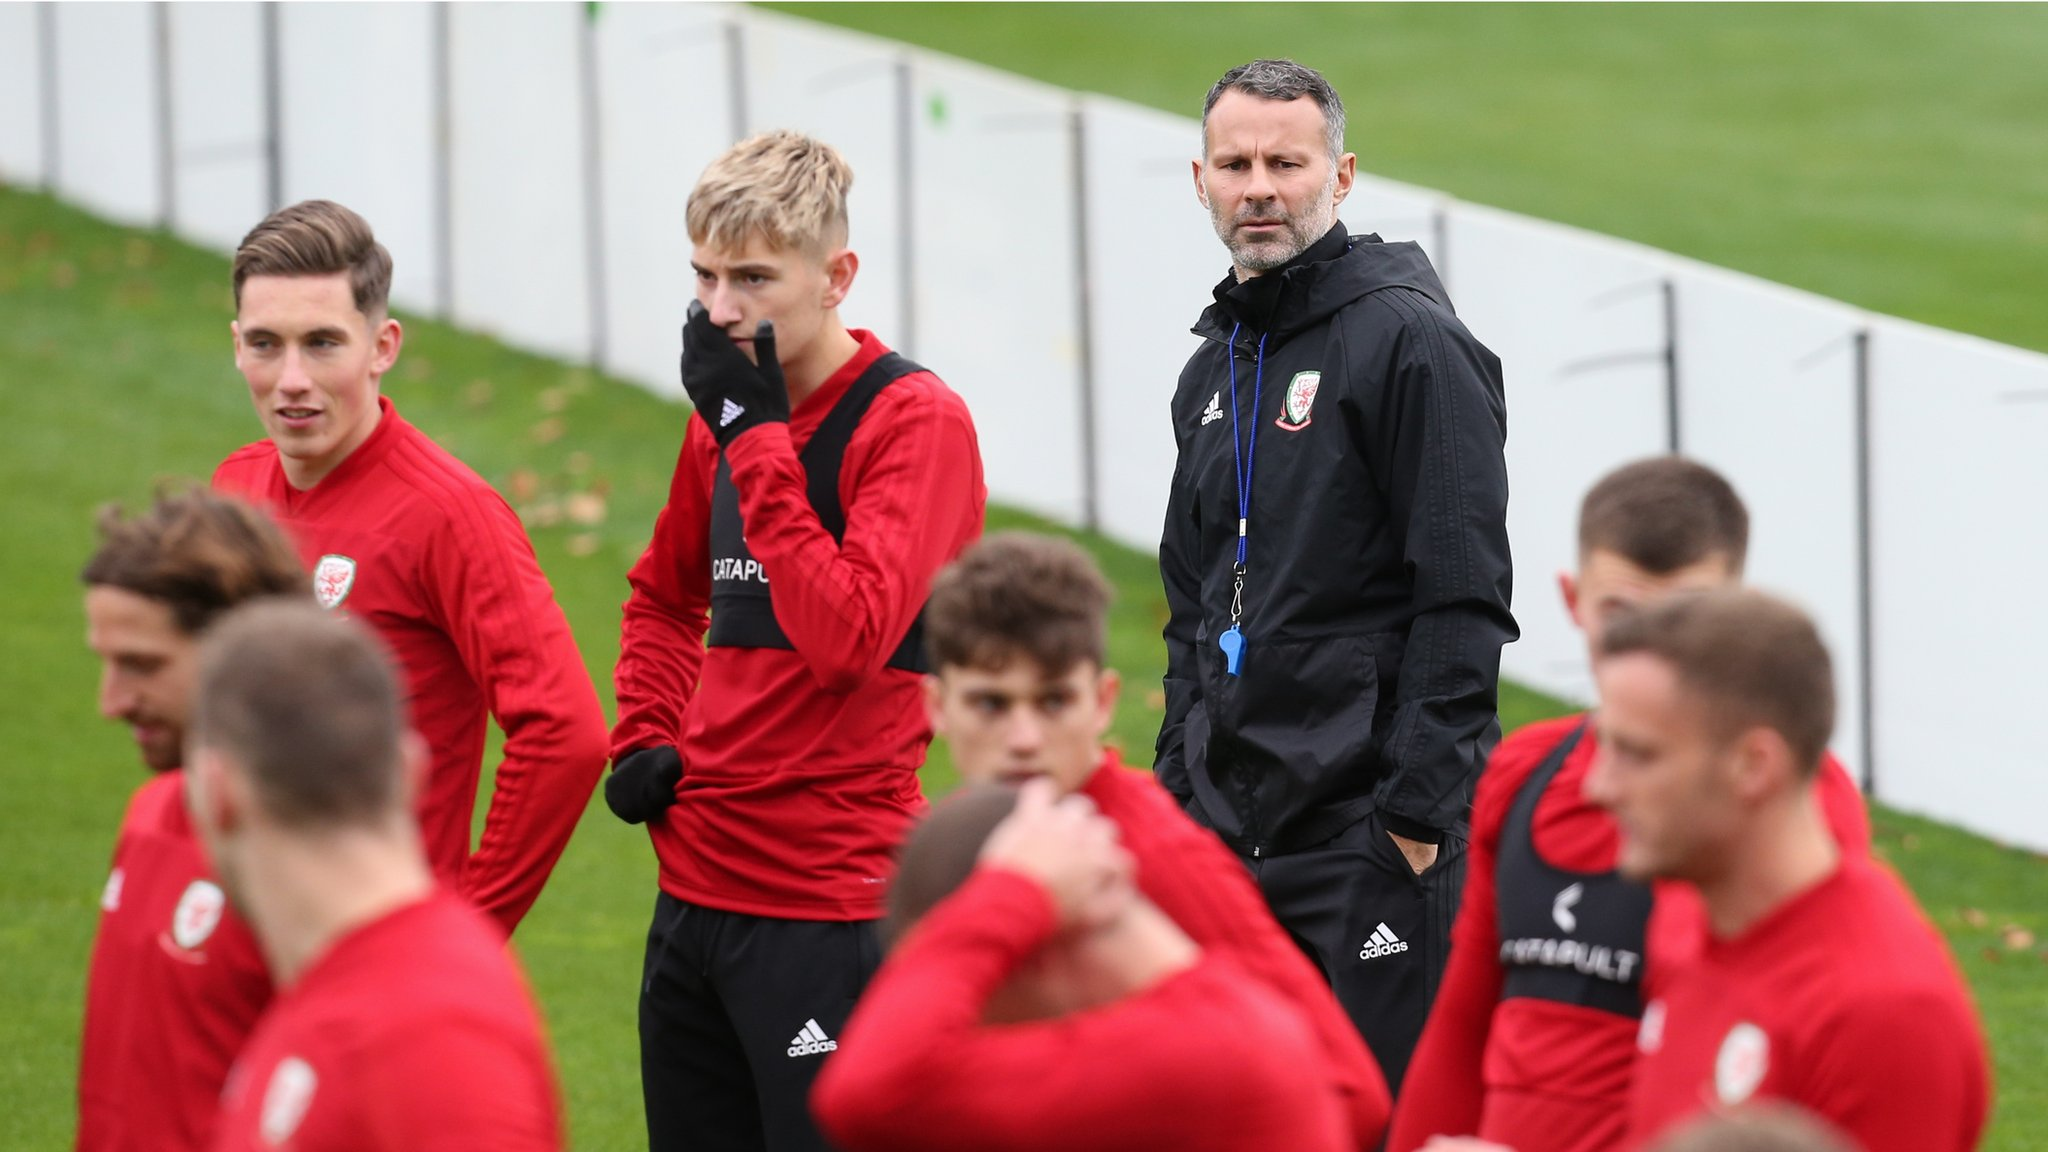 Euro 2020 qualifiers: Who are Wales' opponents?